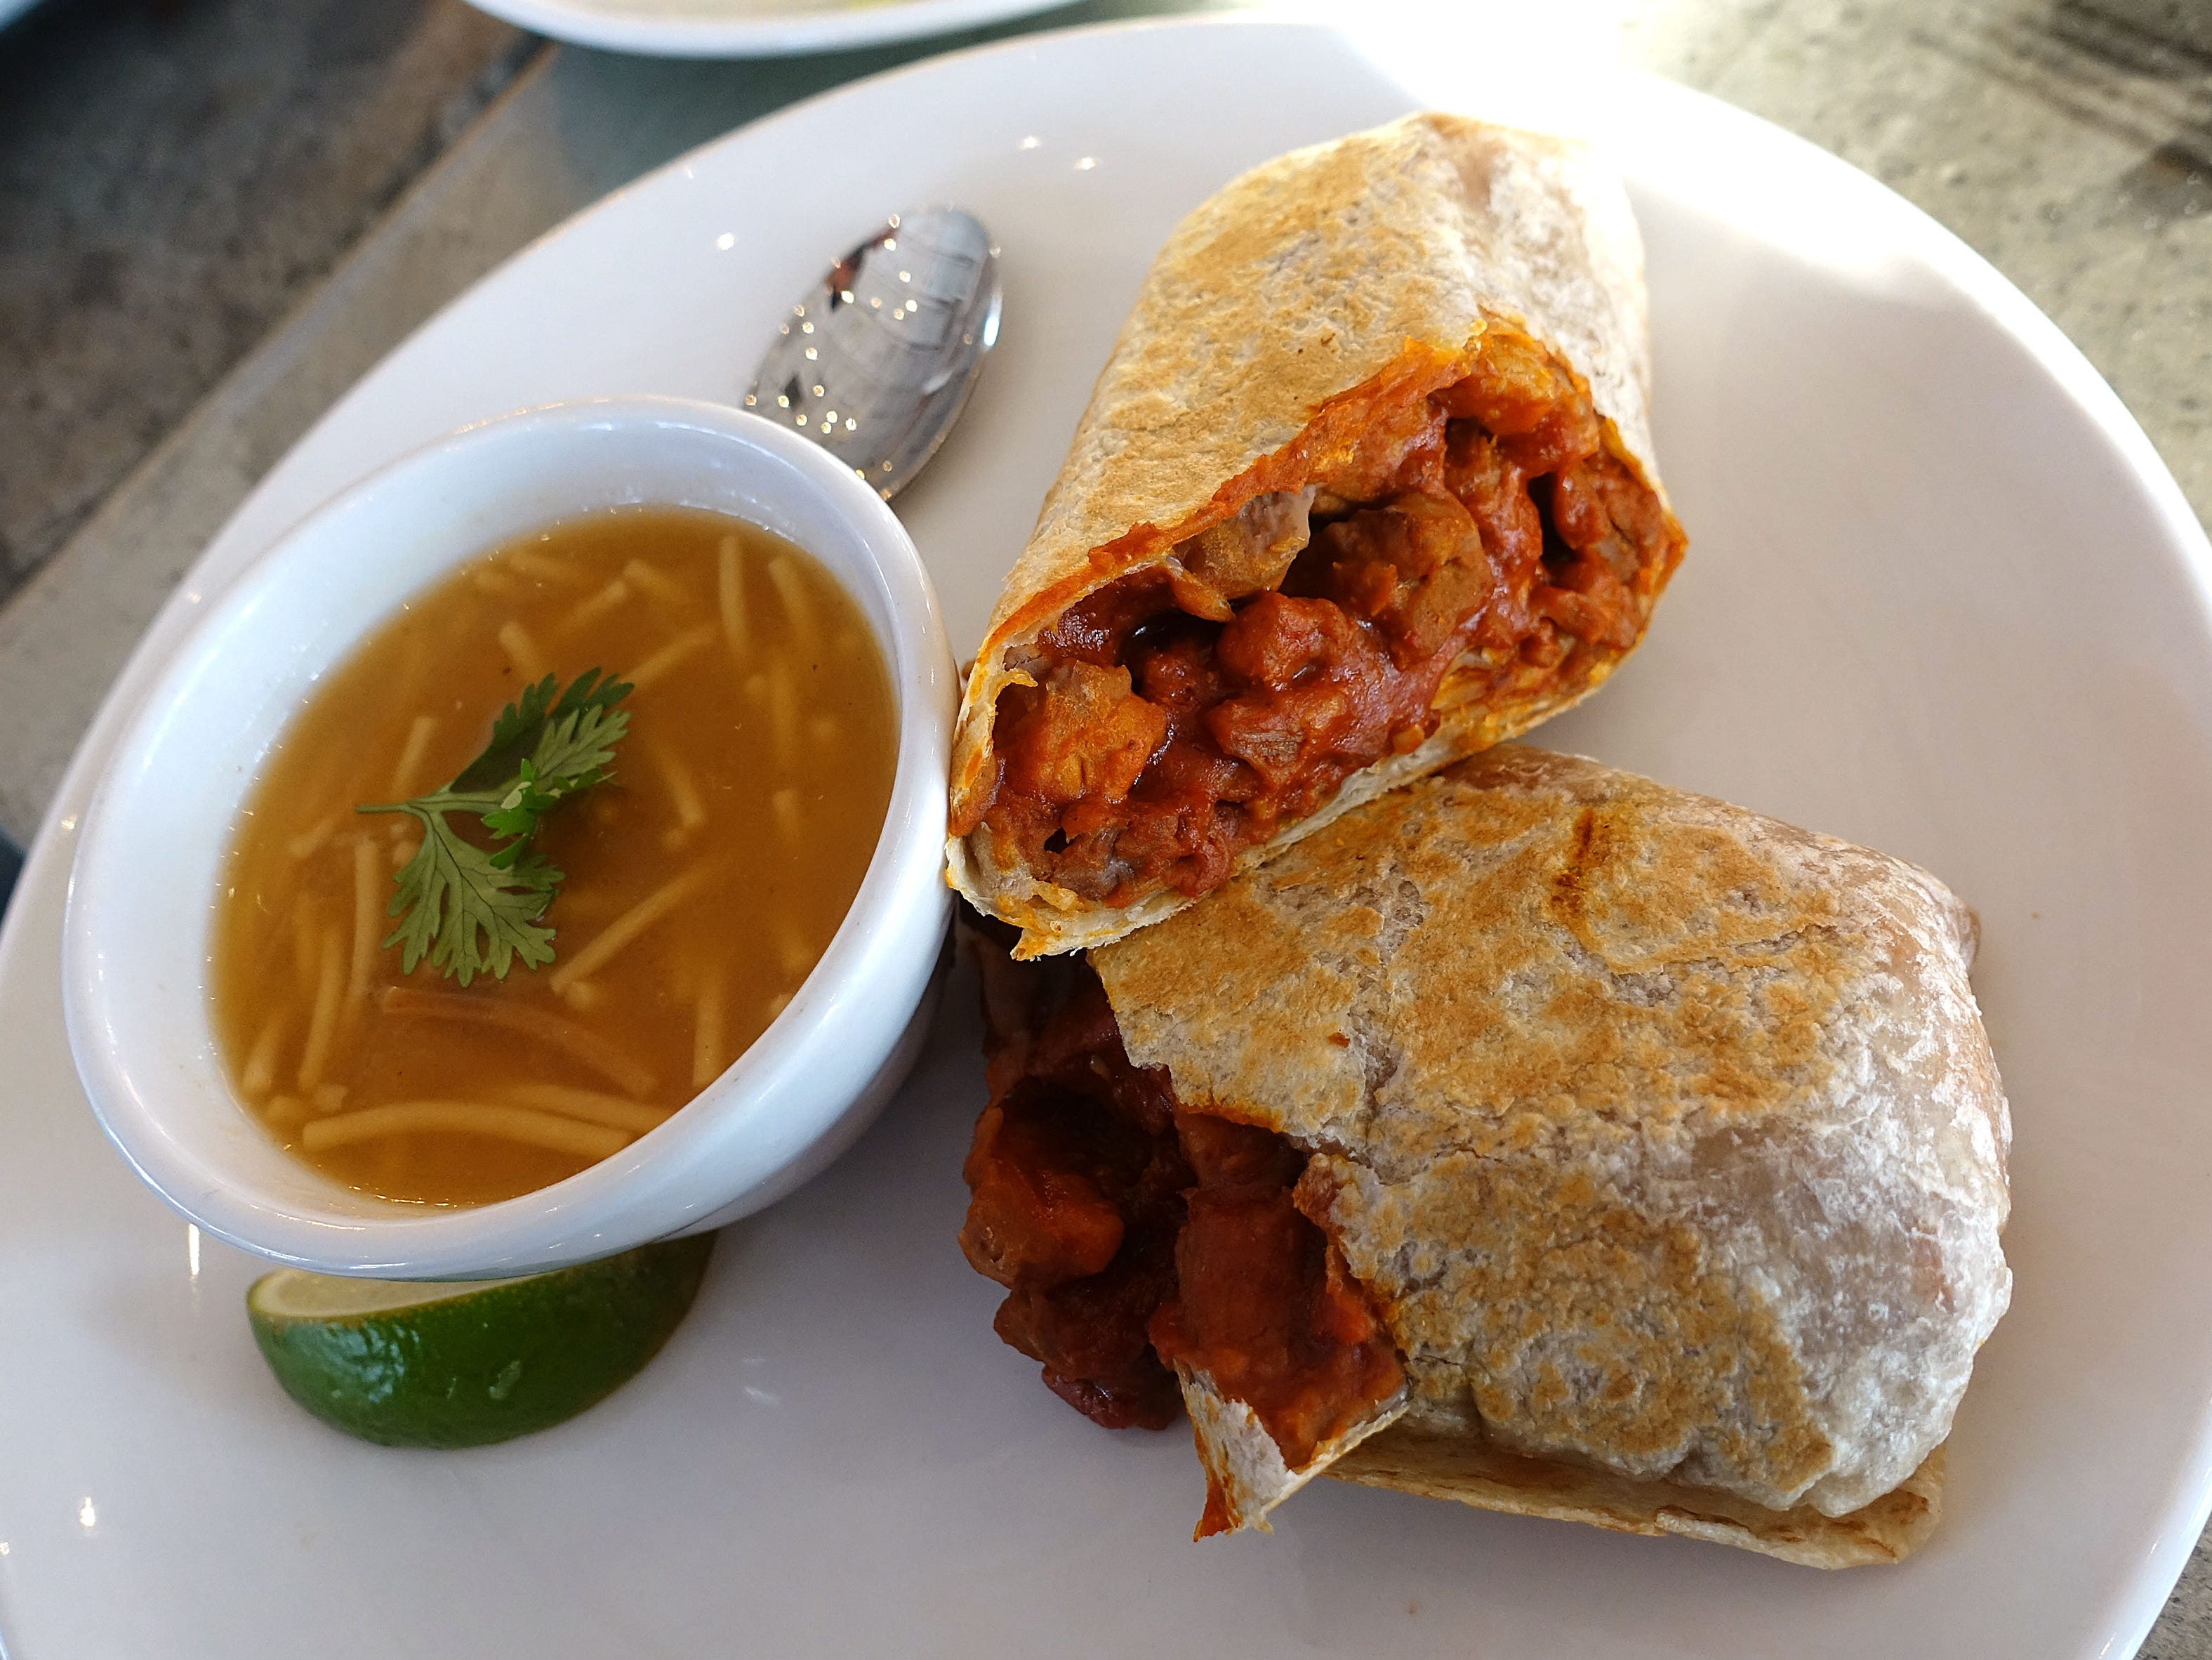 Chile colorado burrito with Niman Ranch pork, refried beans and sopa de fideos at Roland's Cafe Market Bar in Phoenix.